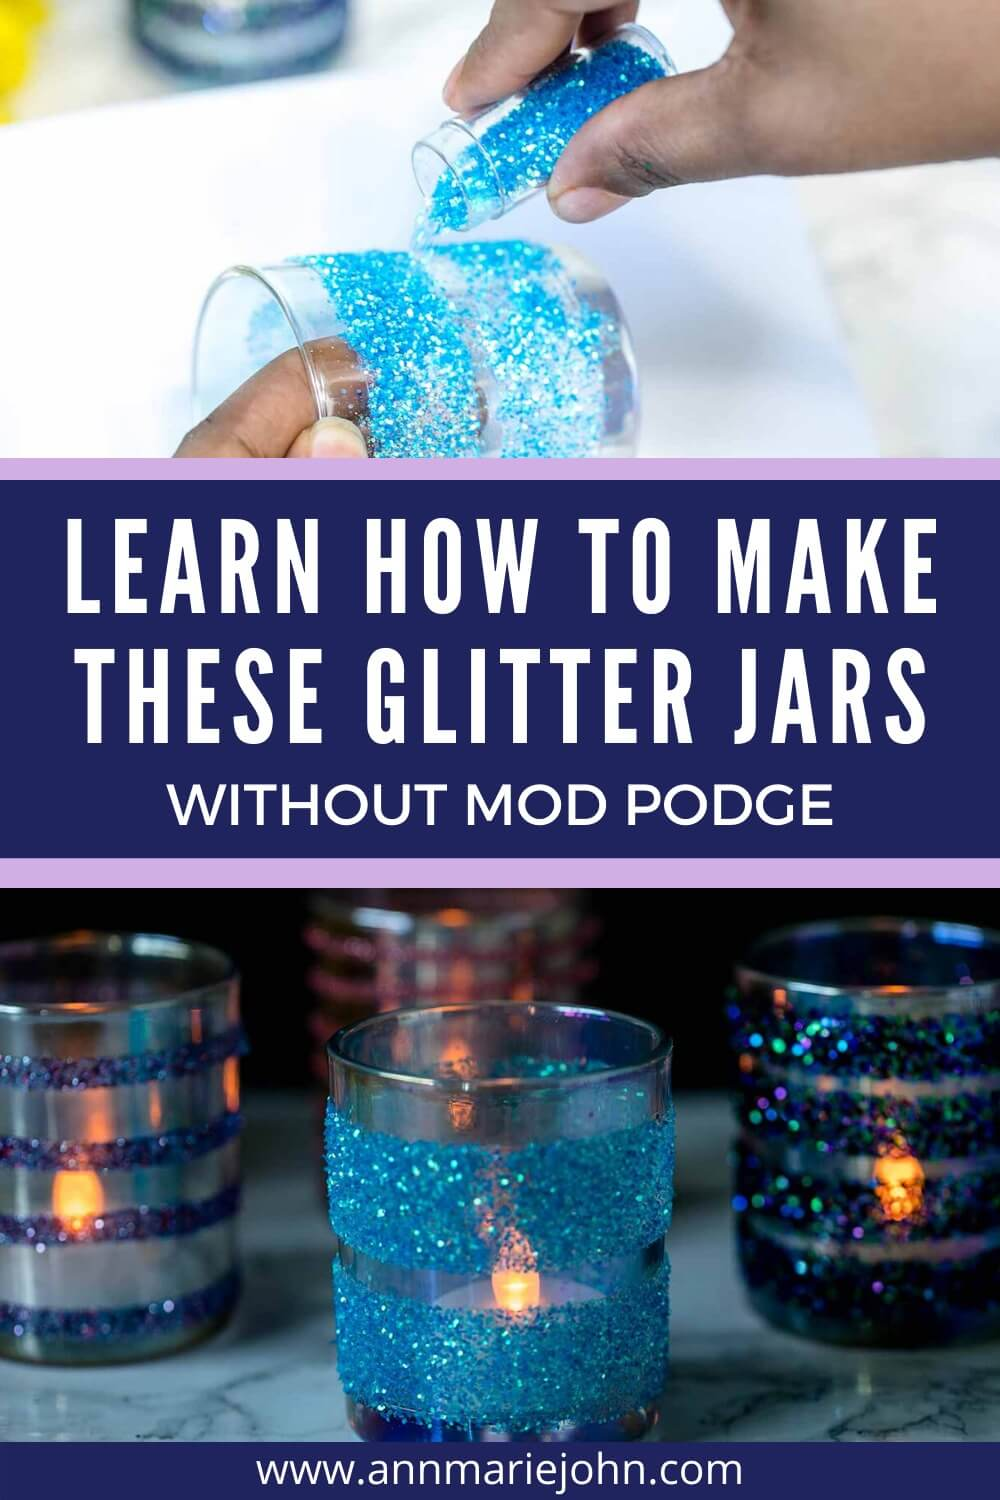 Learn How to Make These Glitter Jars Without Mod Podge